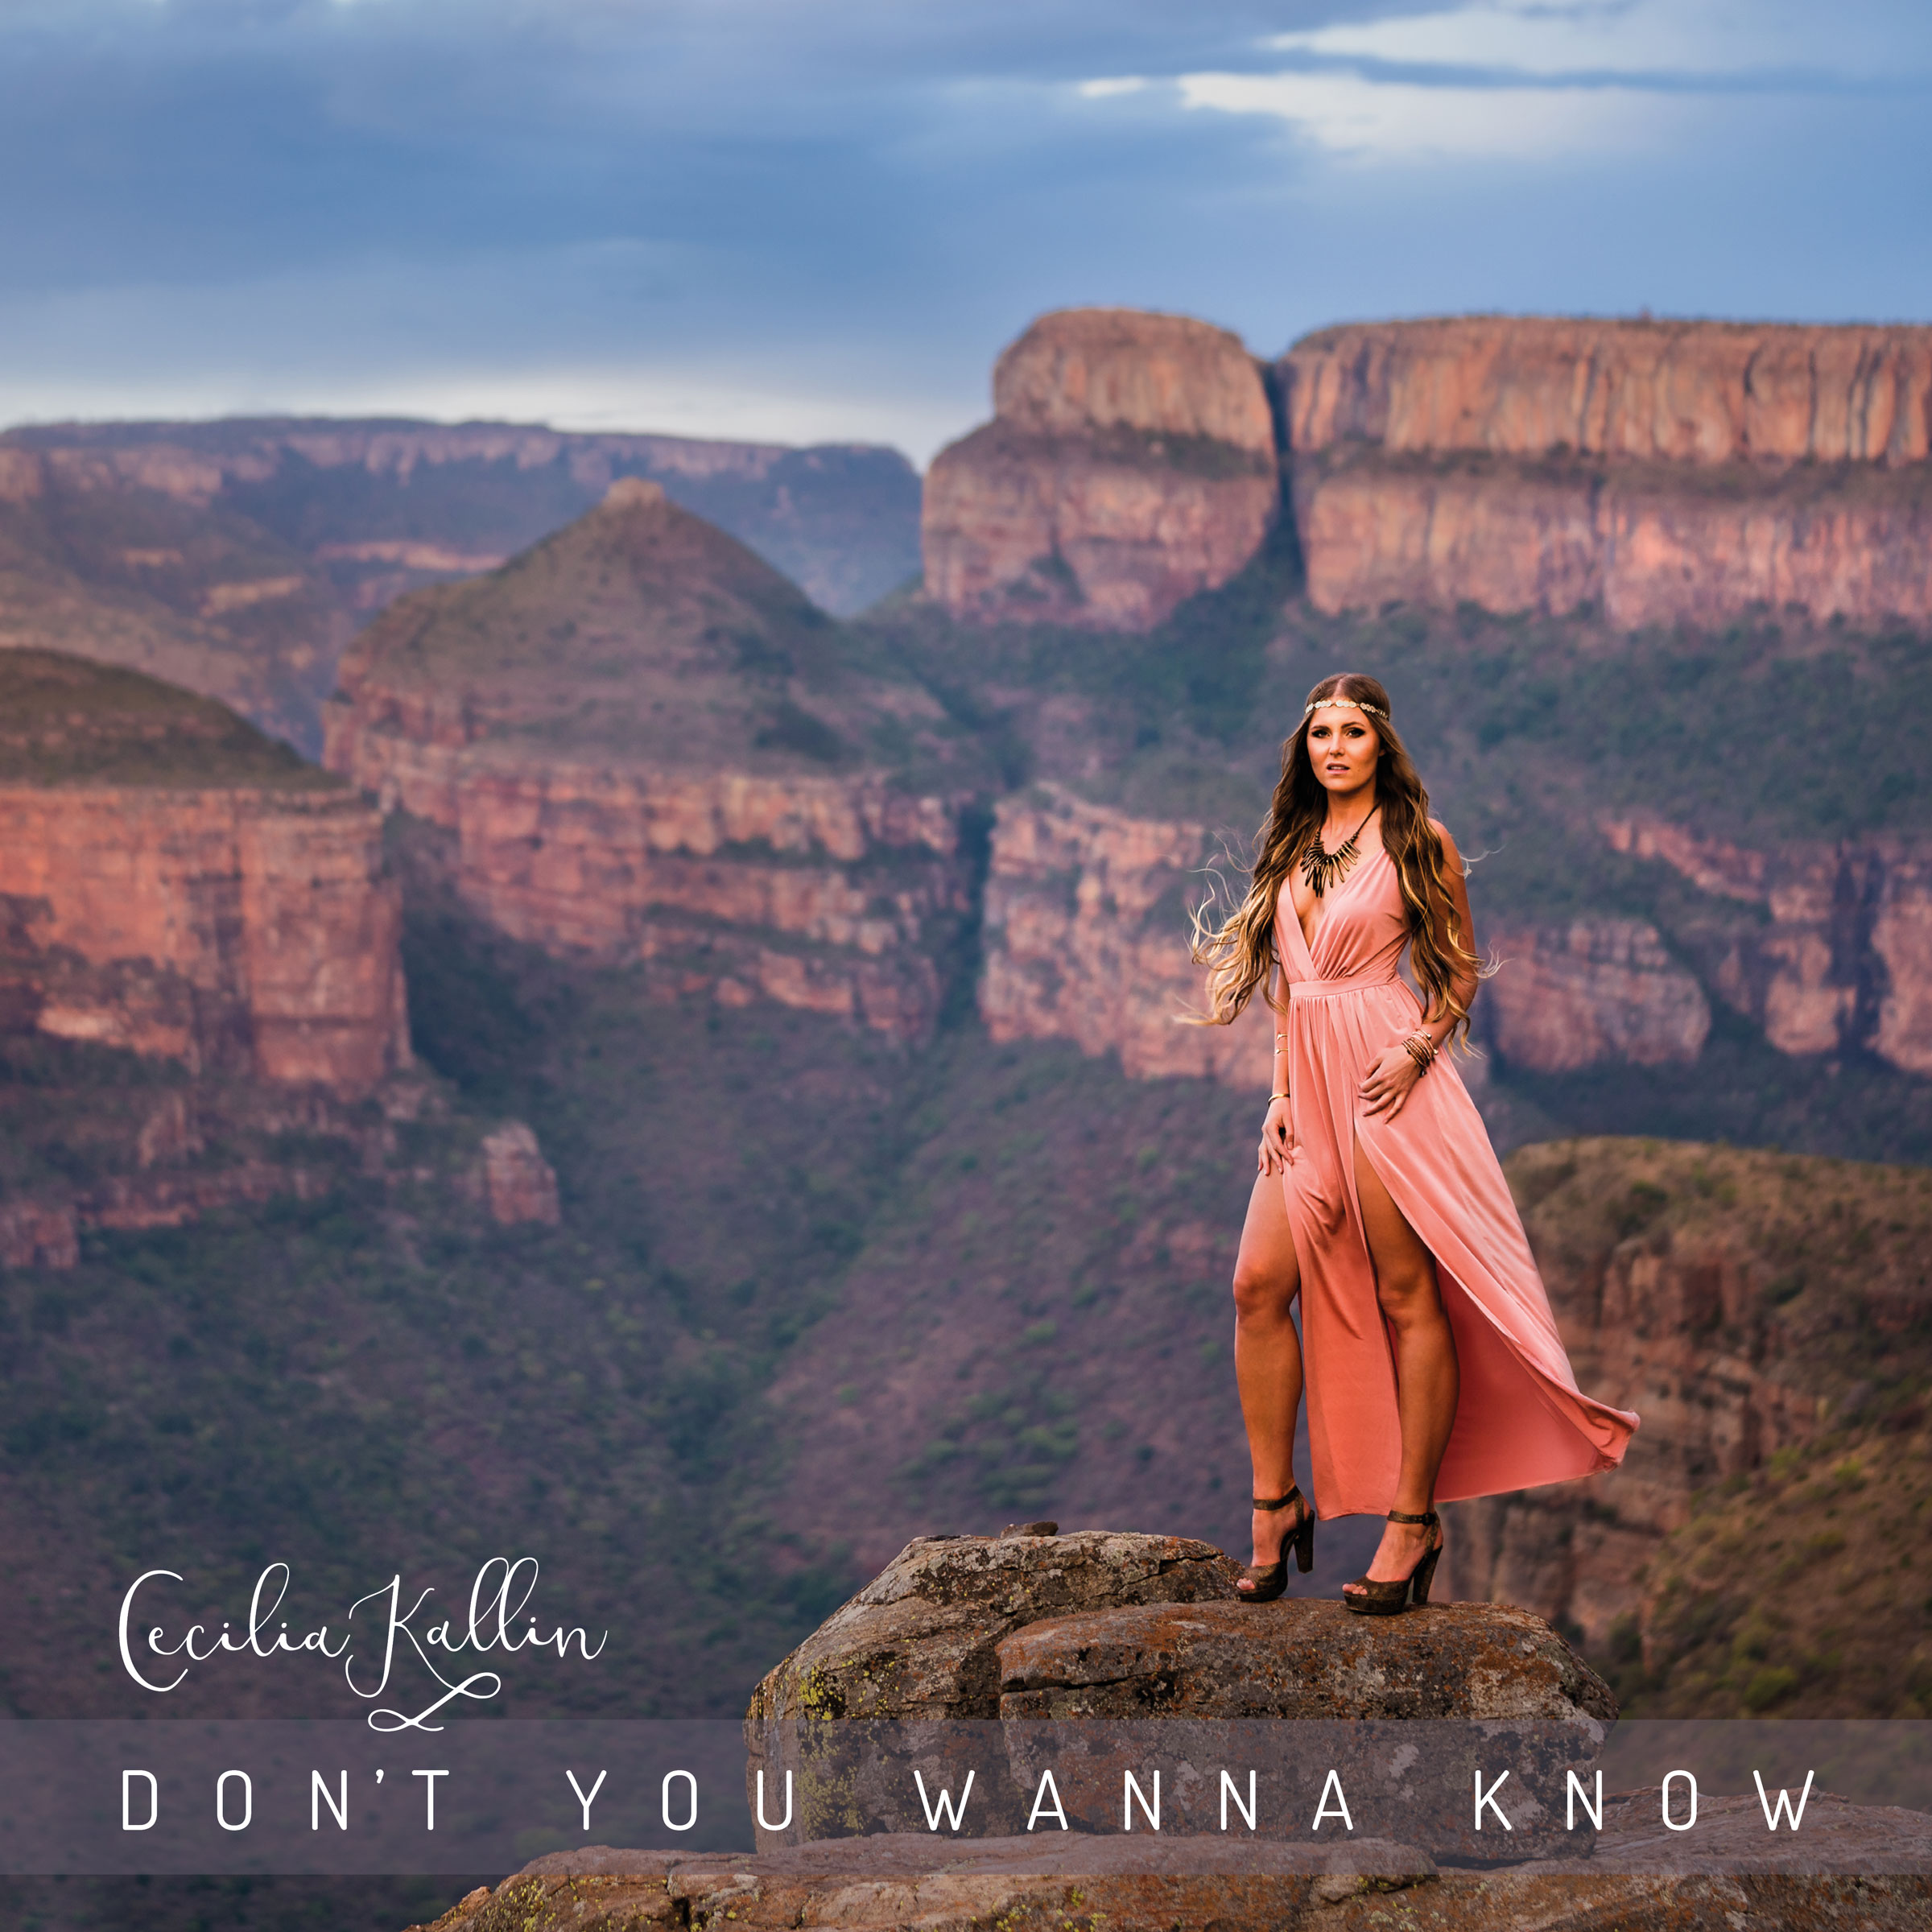 cecilia-kallin-single-cover-dont-you-wanna-know-photo-jesper-anhede